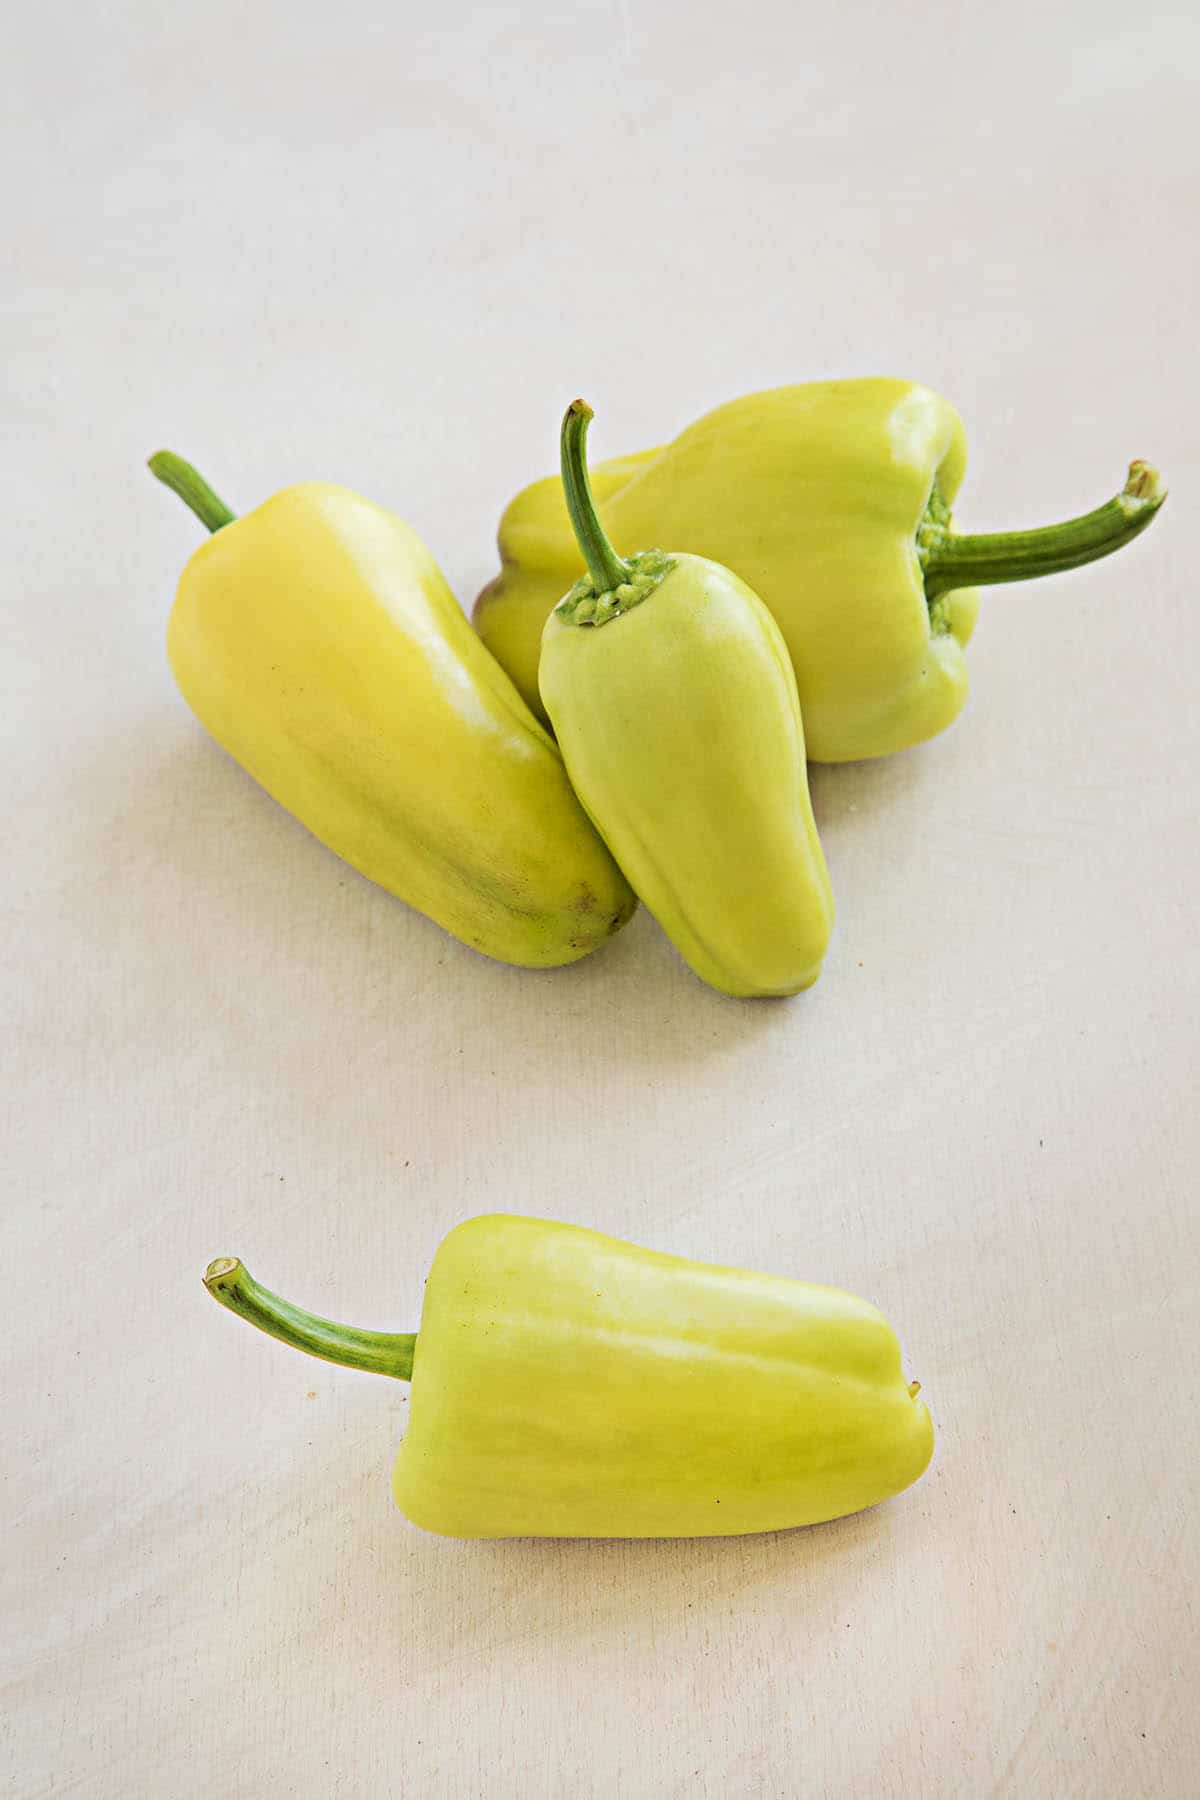 Gypsy Pepper: A Sweet Hybrid Pepper